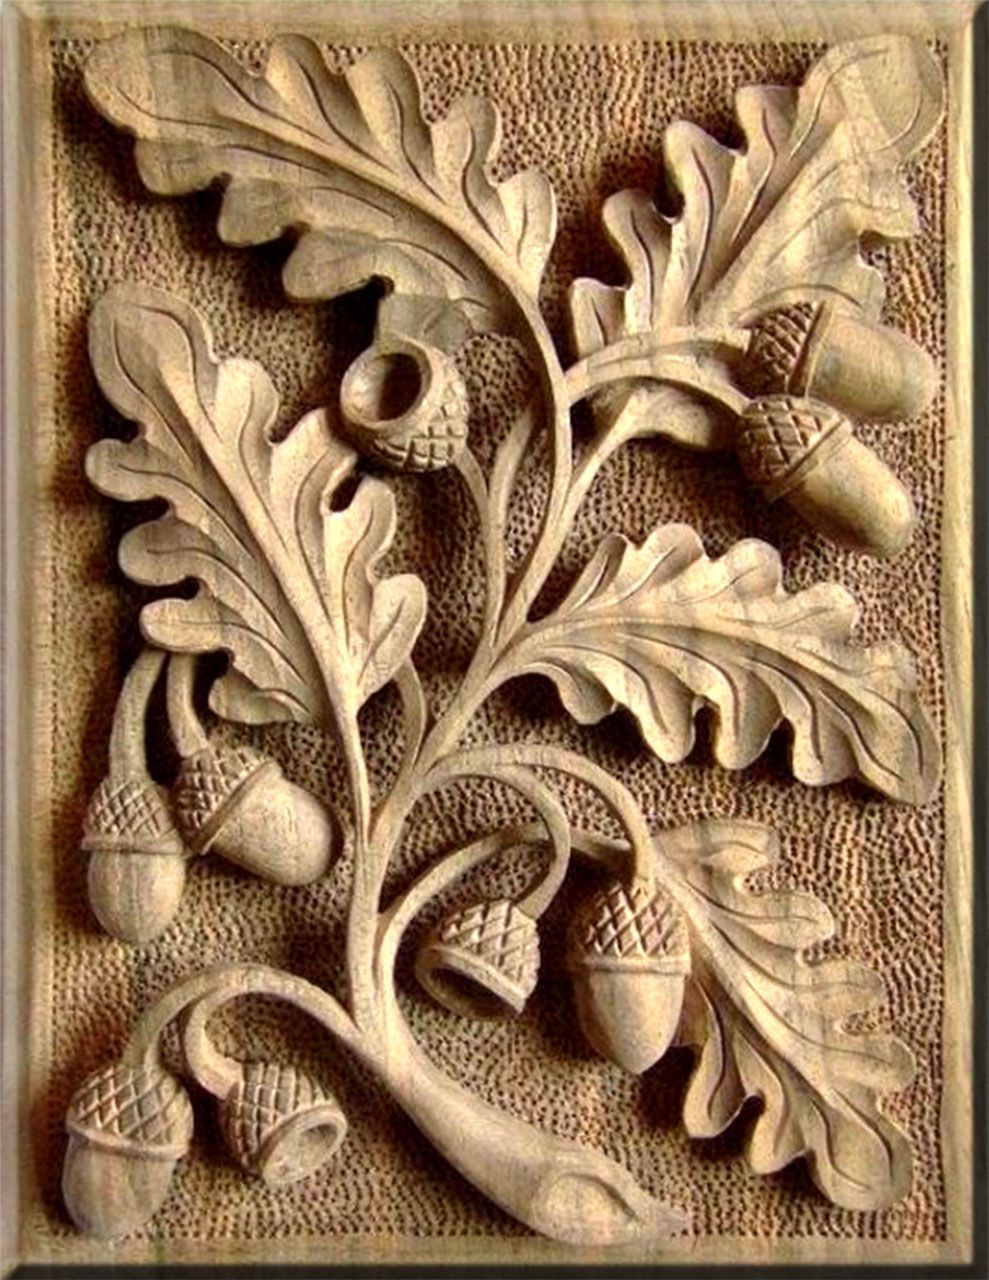 Wood carving cnc vs hand